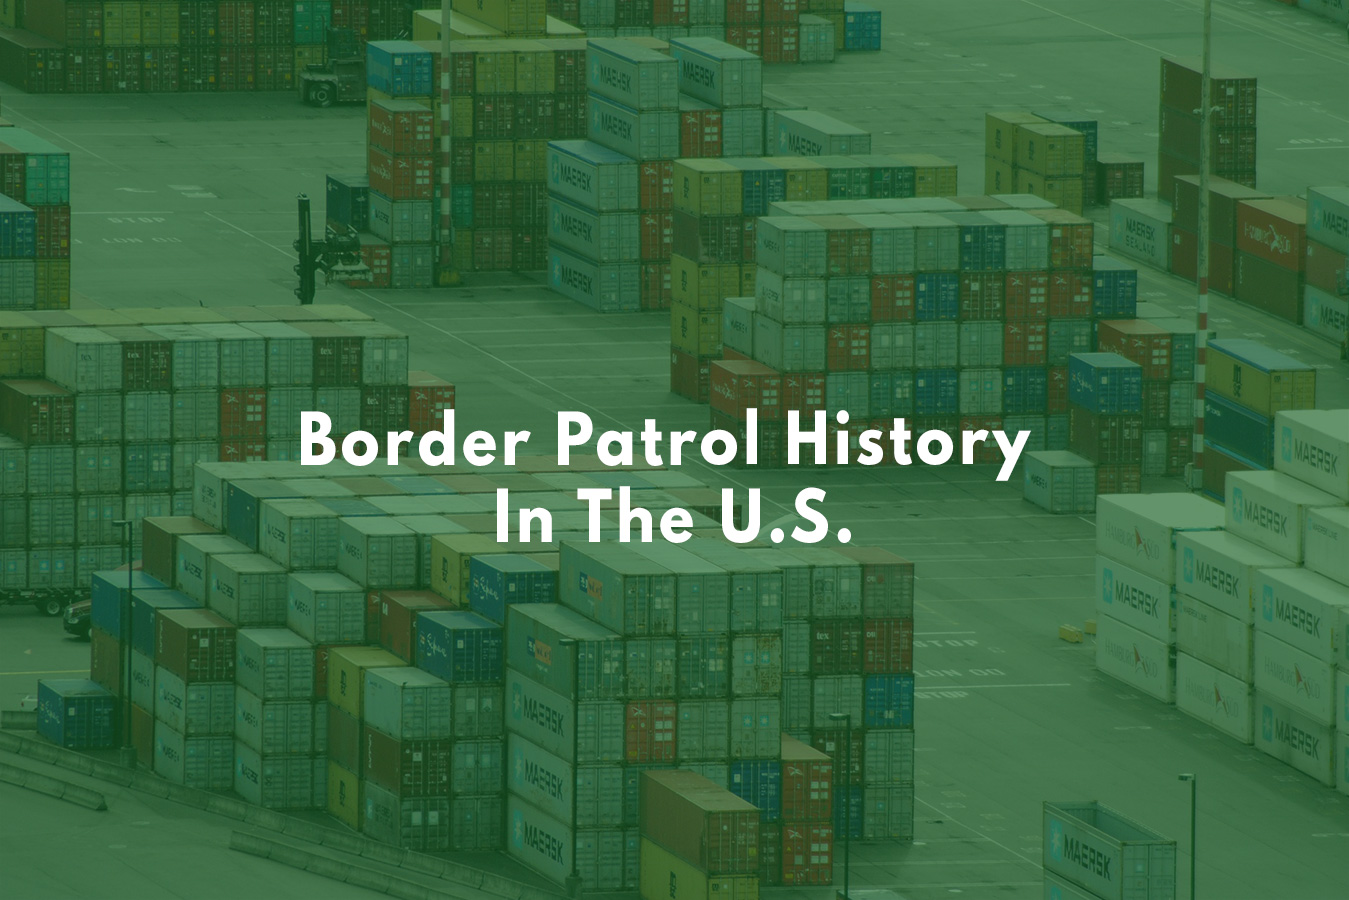 The U.S. customs service history is rich and long-lasting